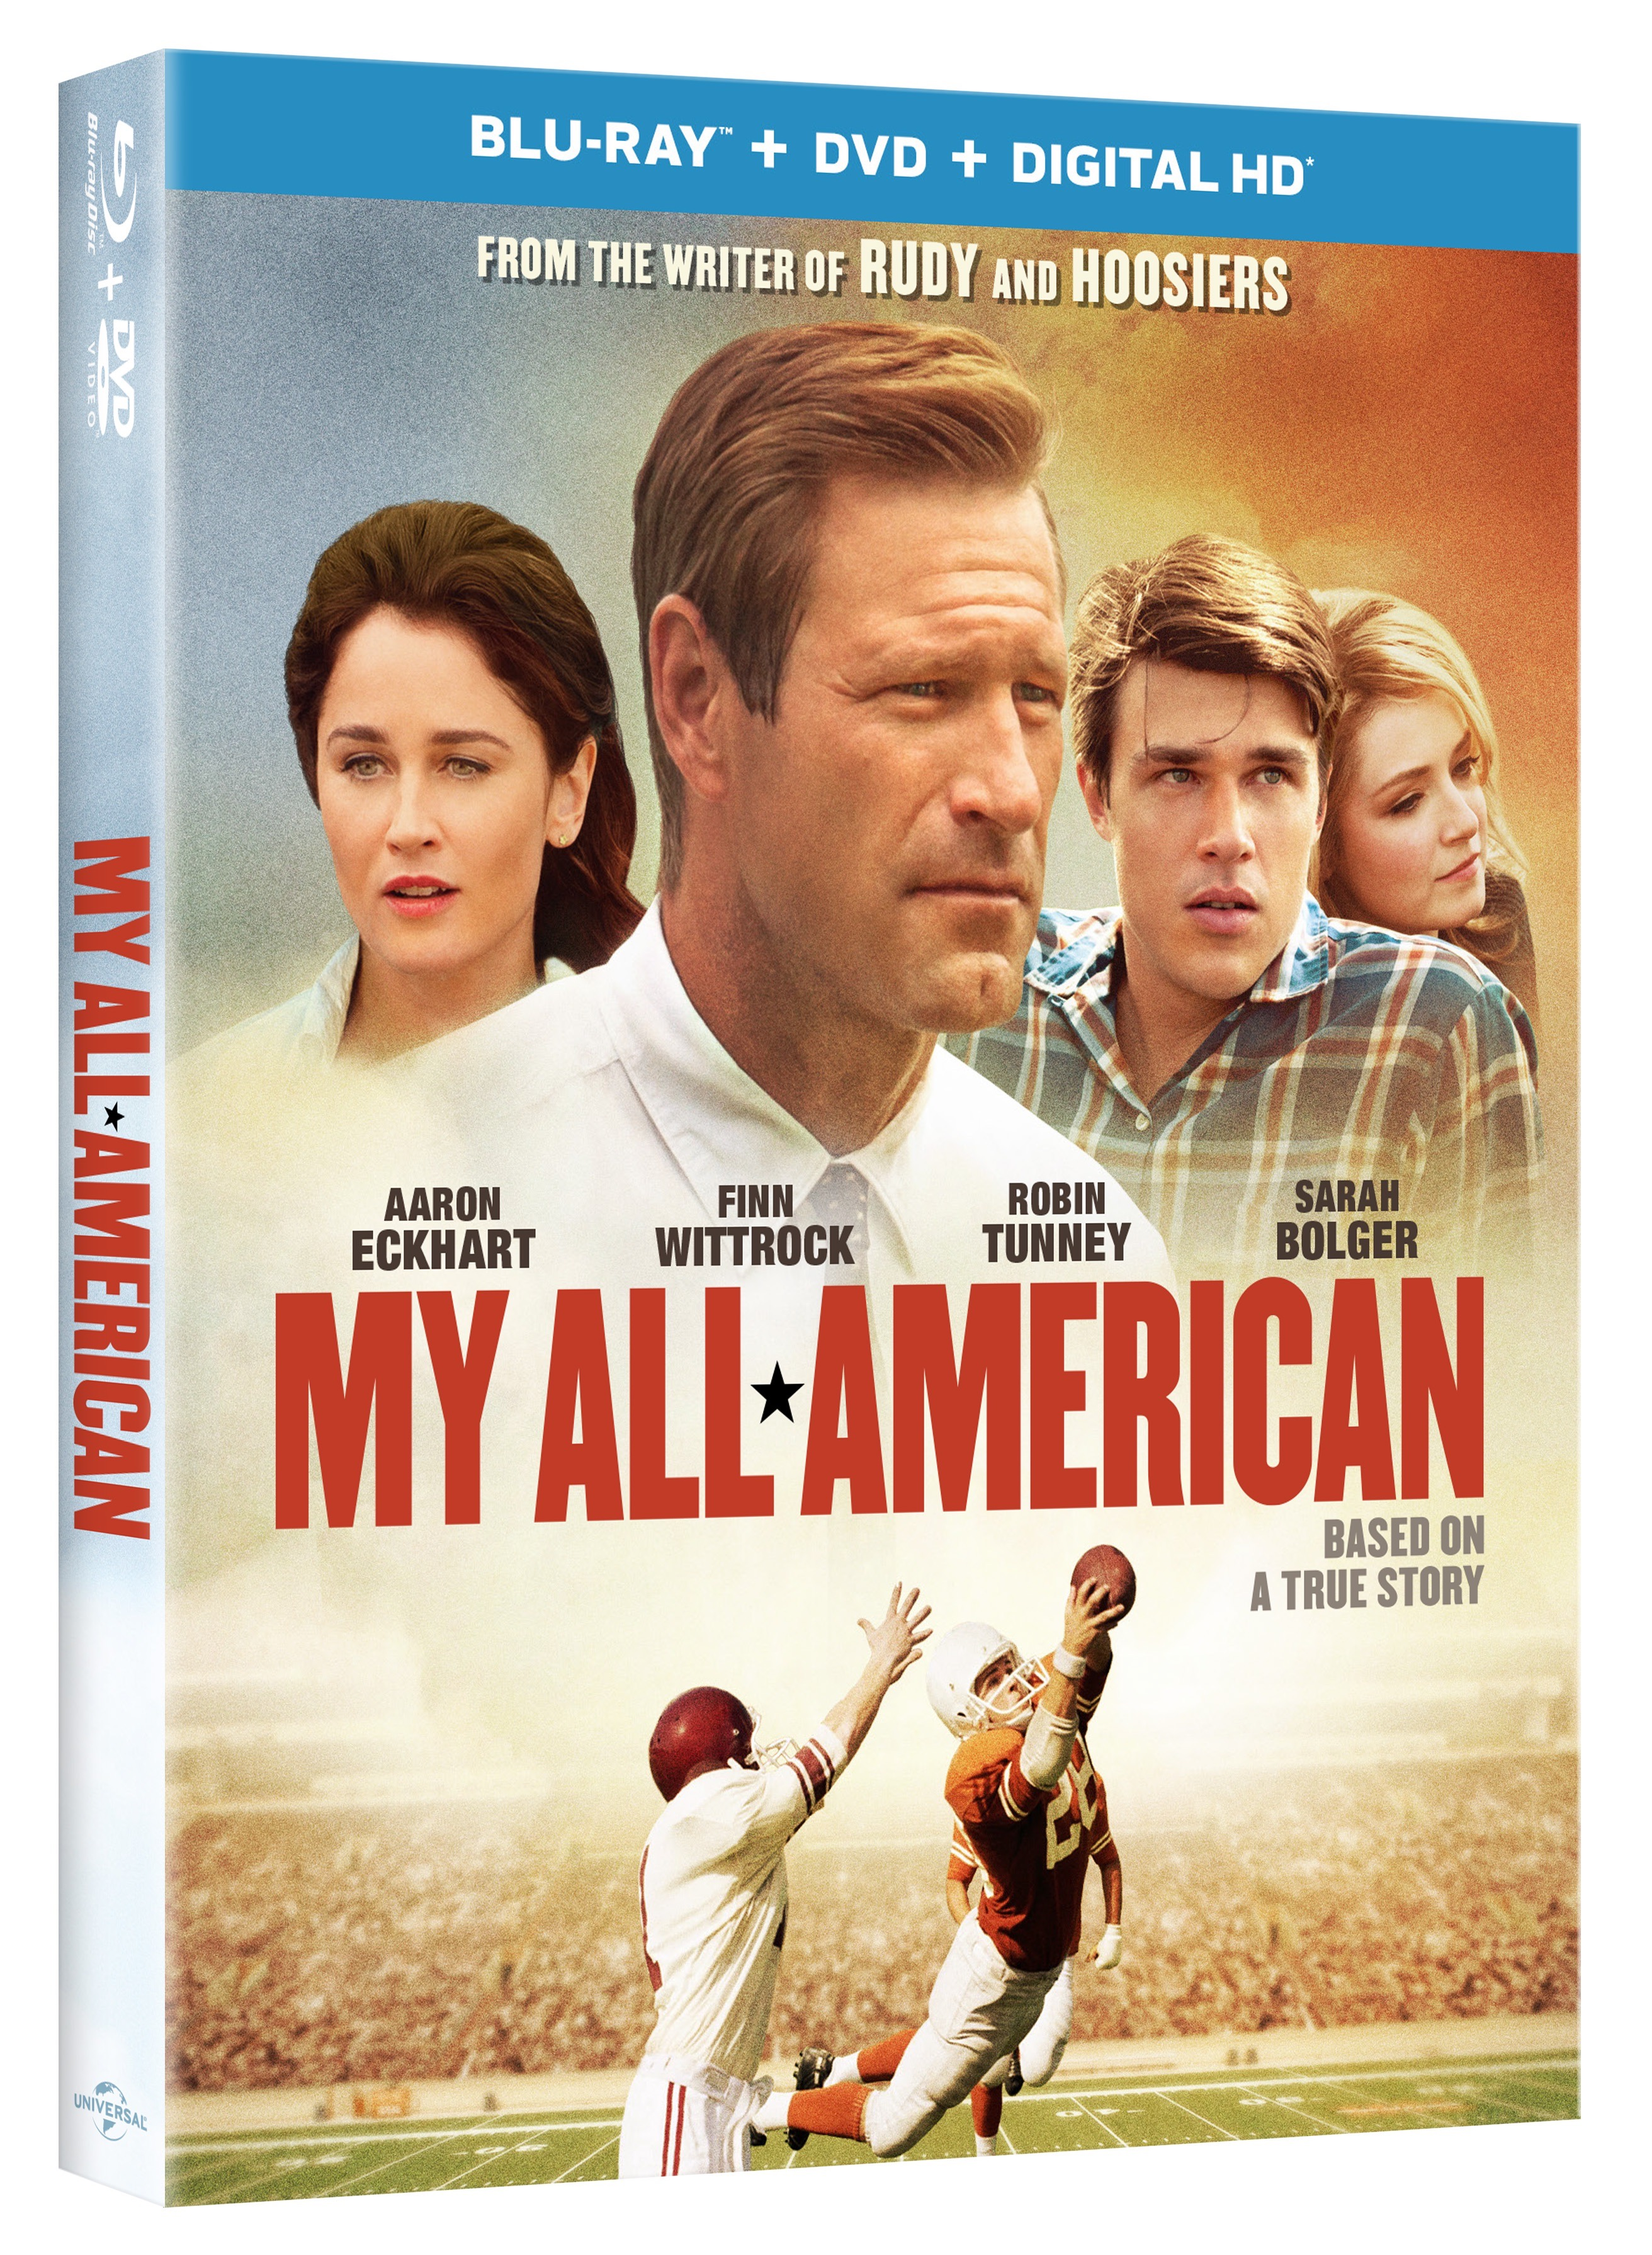 My All American Blu-ray Review